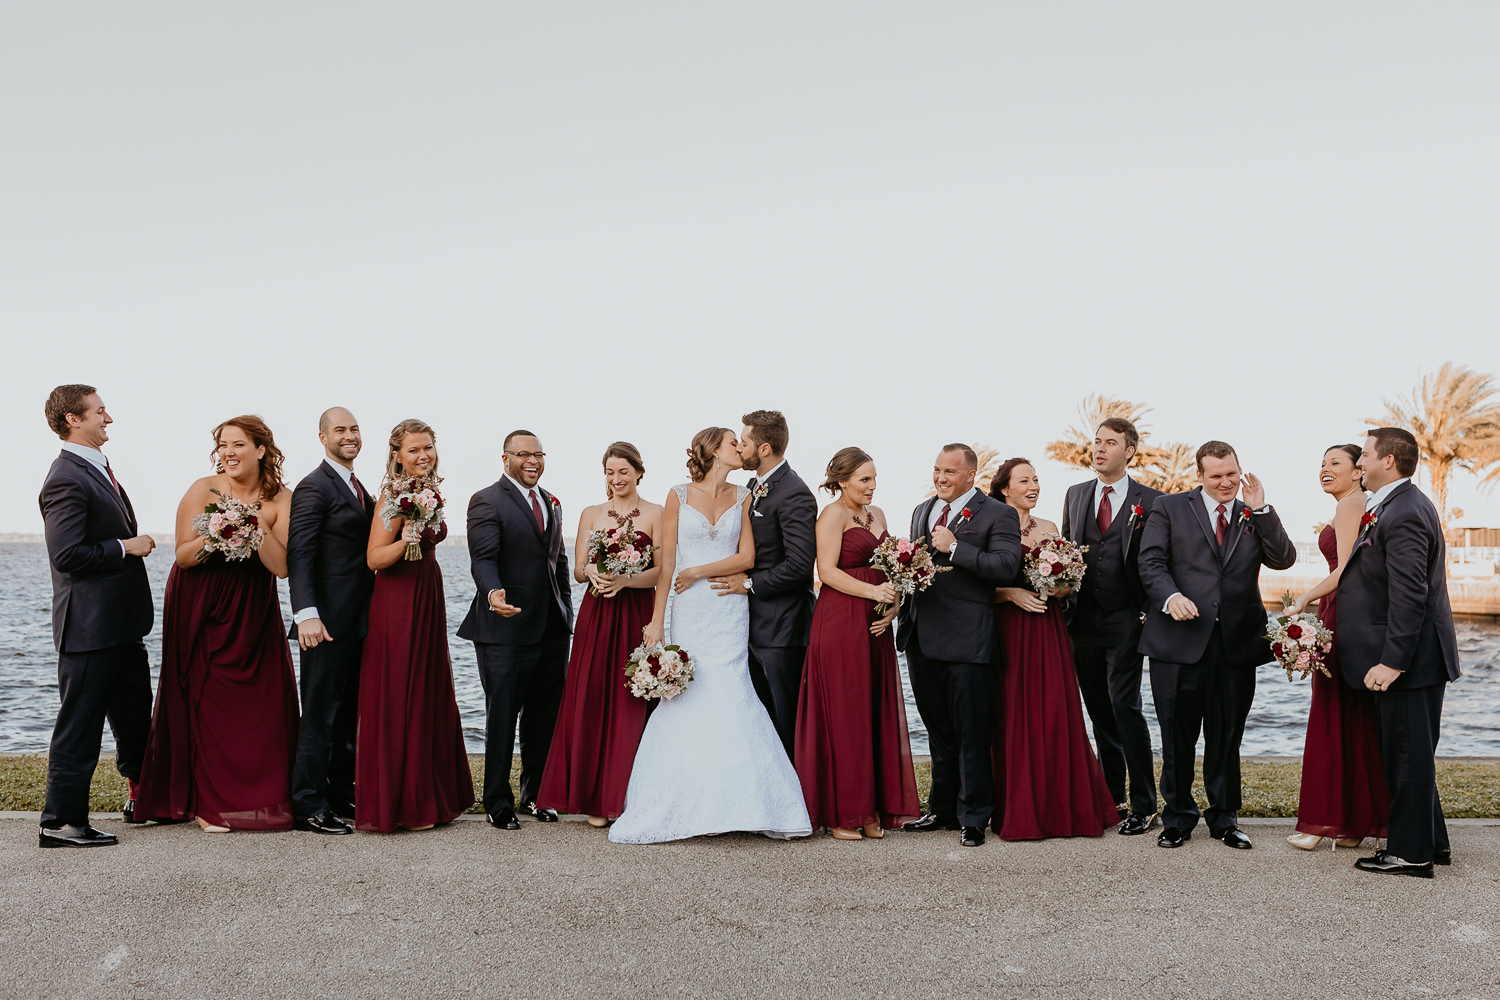 bridal party lined up mixed genders in front of lake newlyweds kissing in the middle